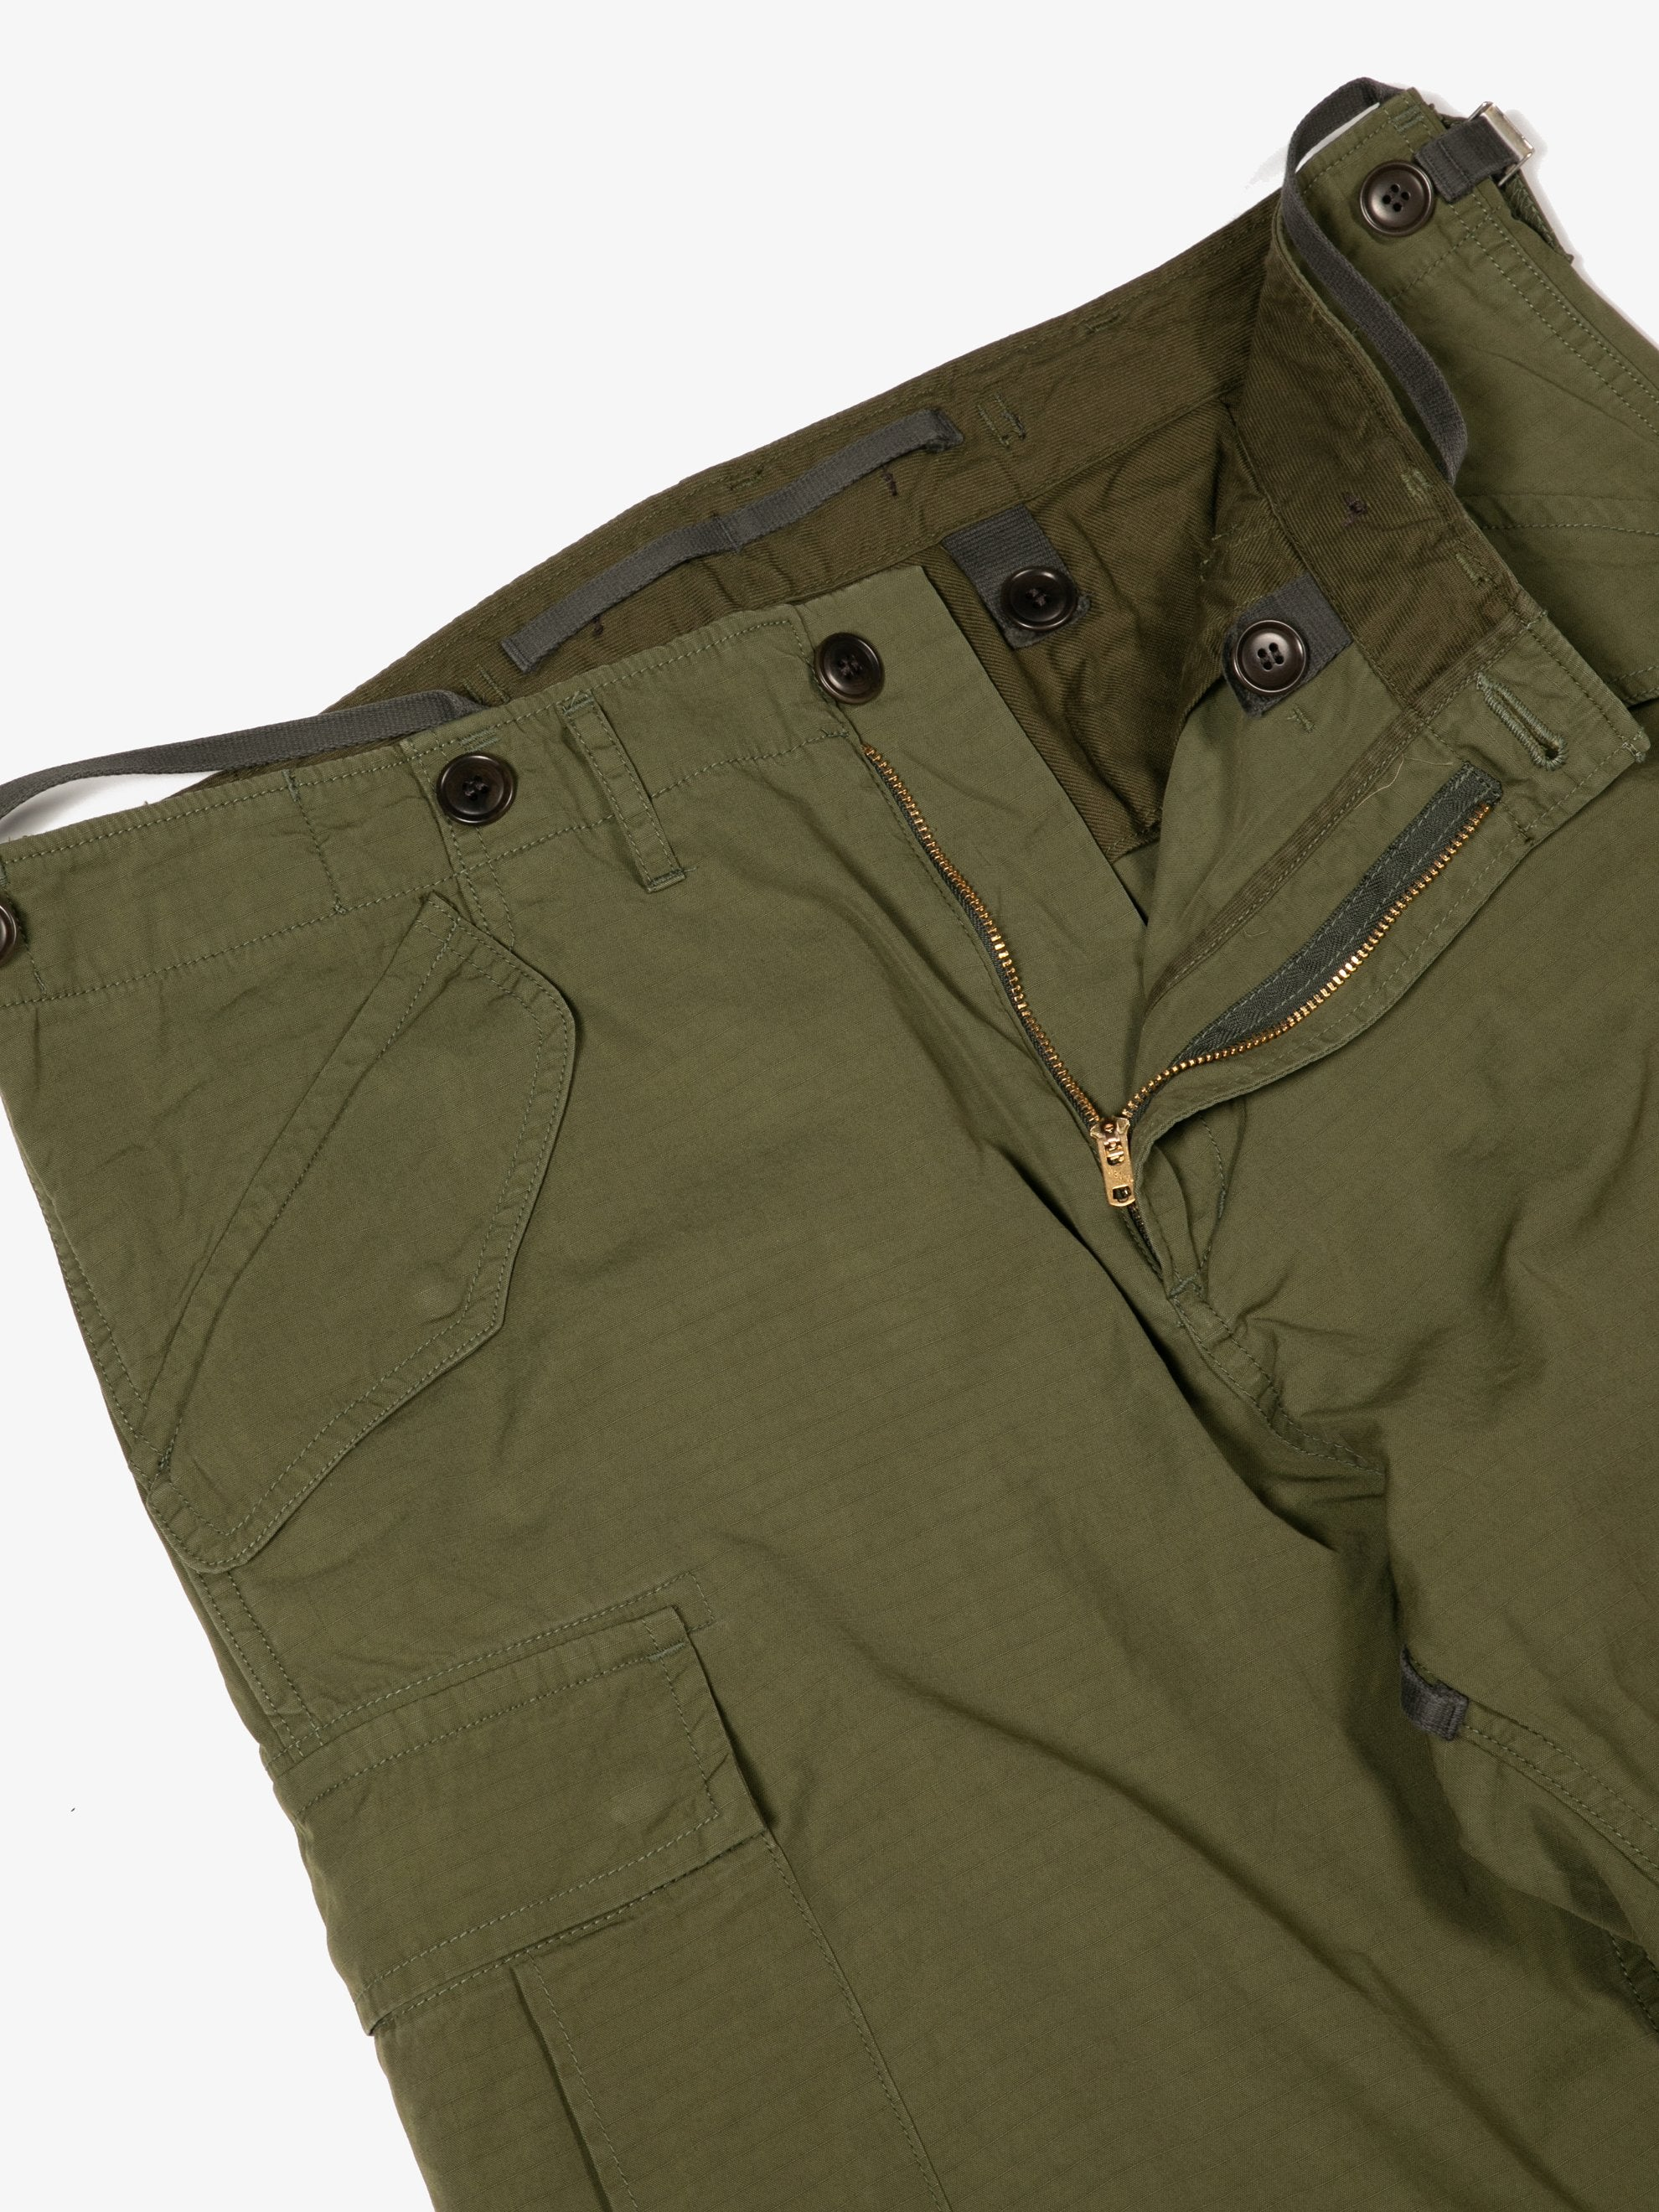 Jumbo Eiger Sanction Pants